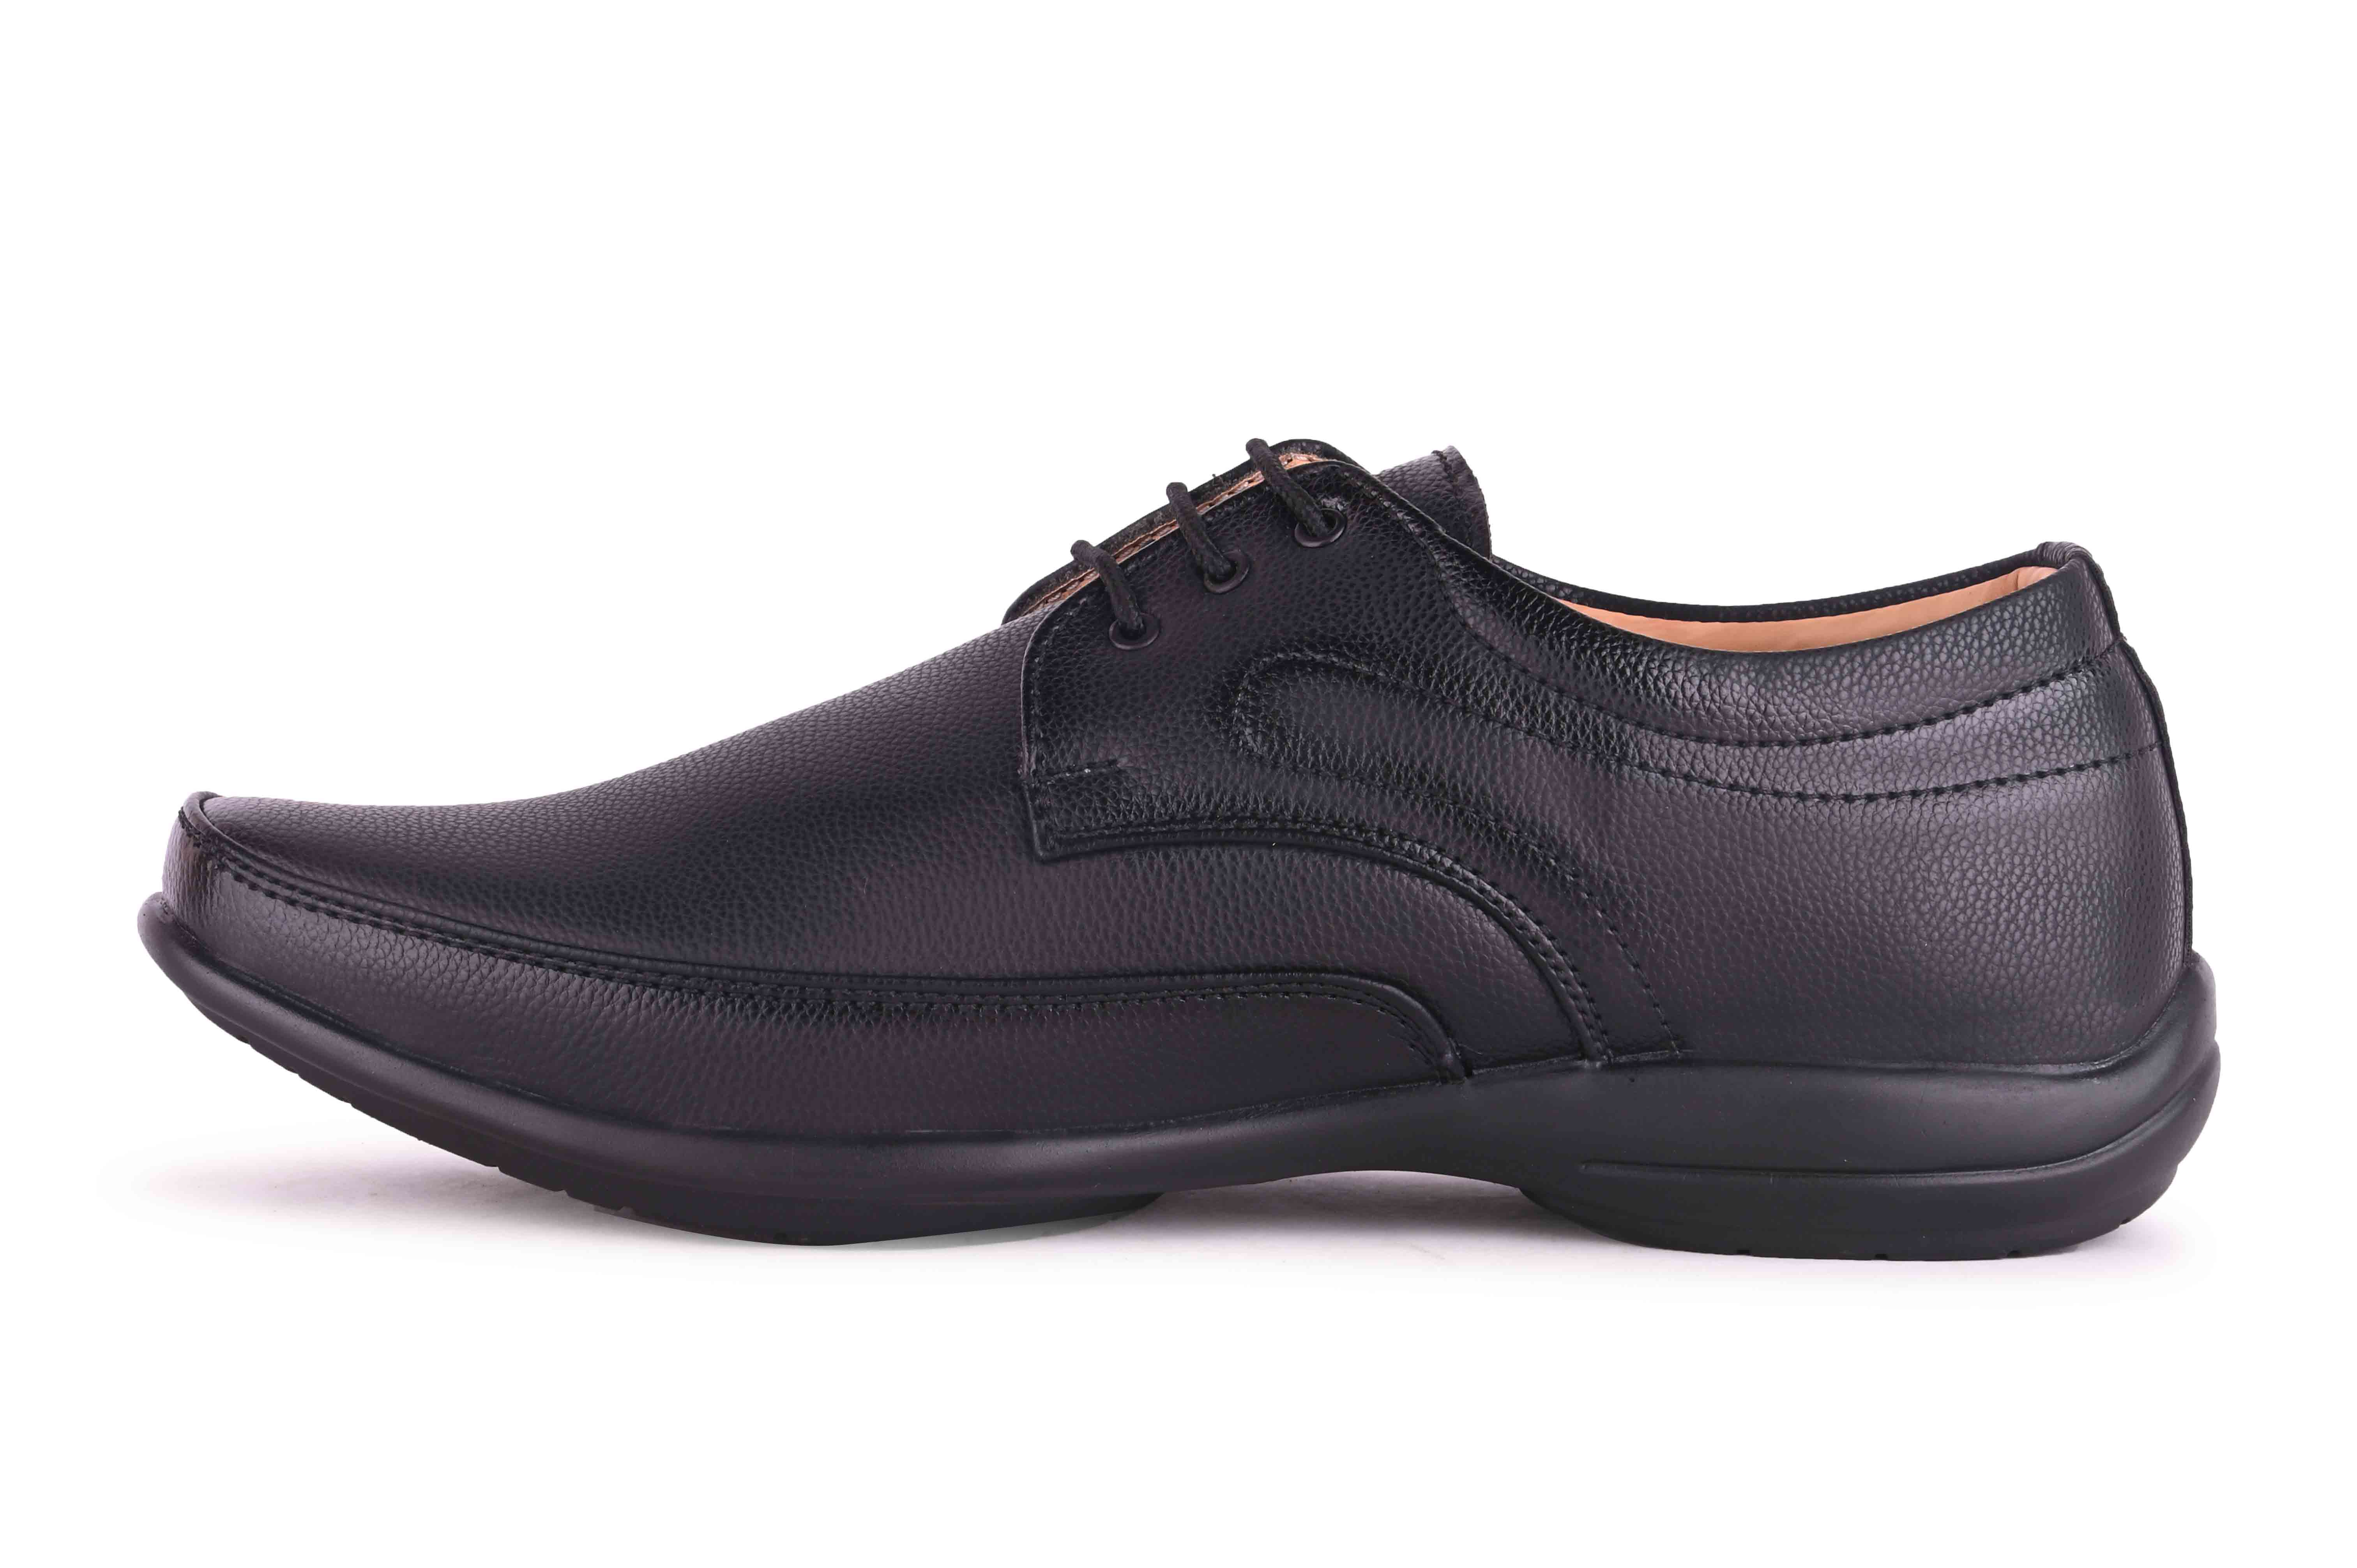 Almighty Derby For Men BD01BLK (Black, 6-10, 8 PAIRS)